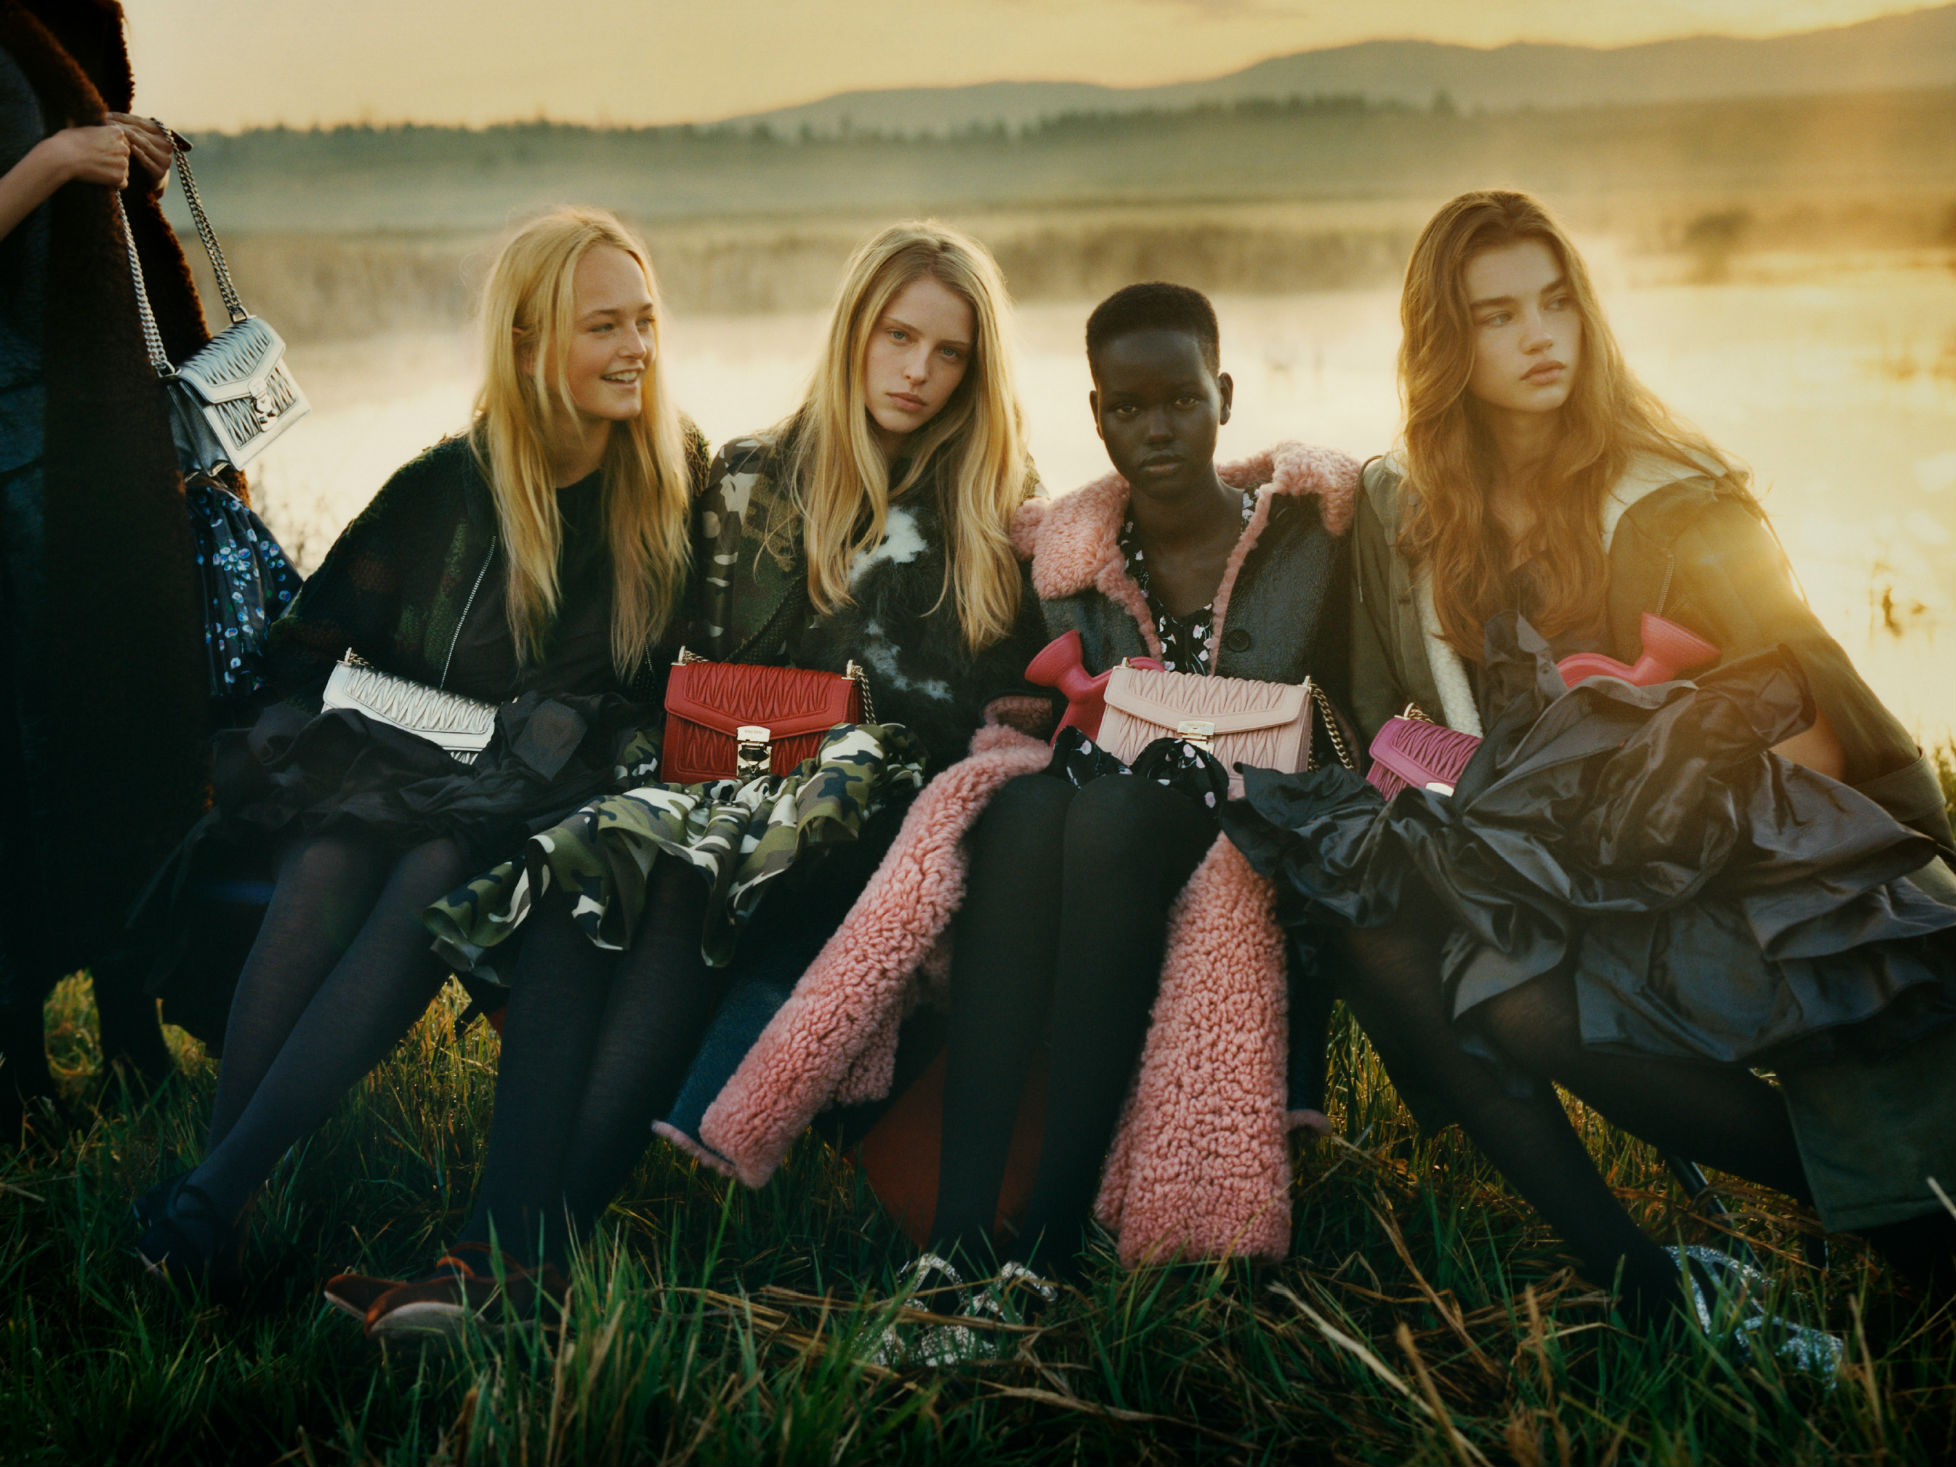 See more from Miu Miu's AW19 campaign